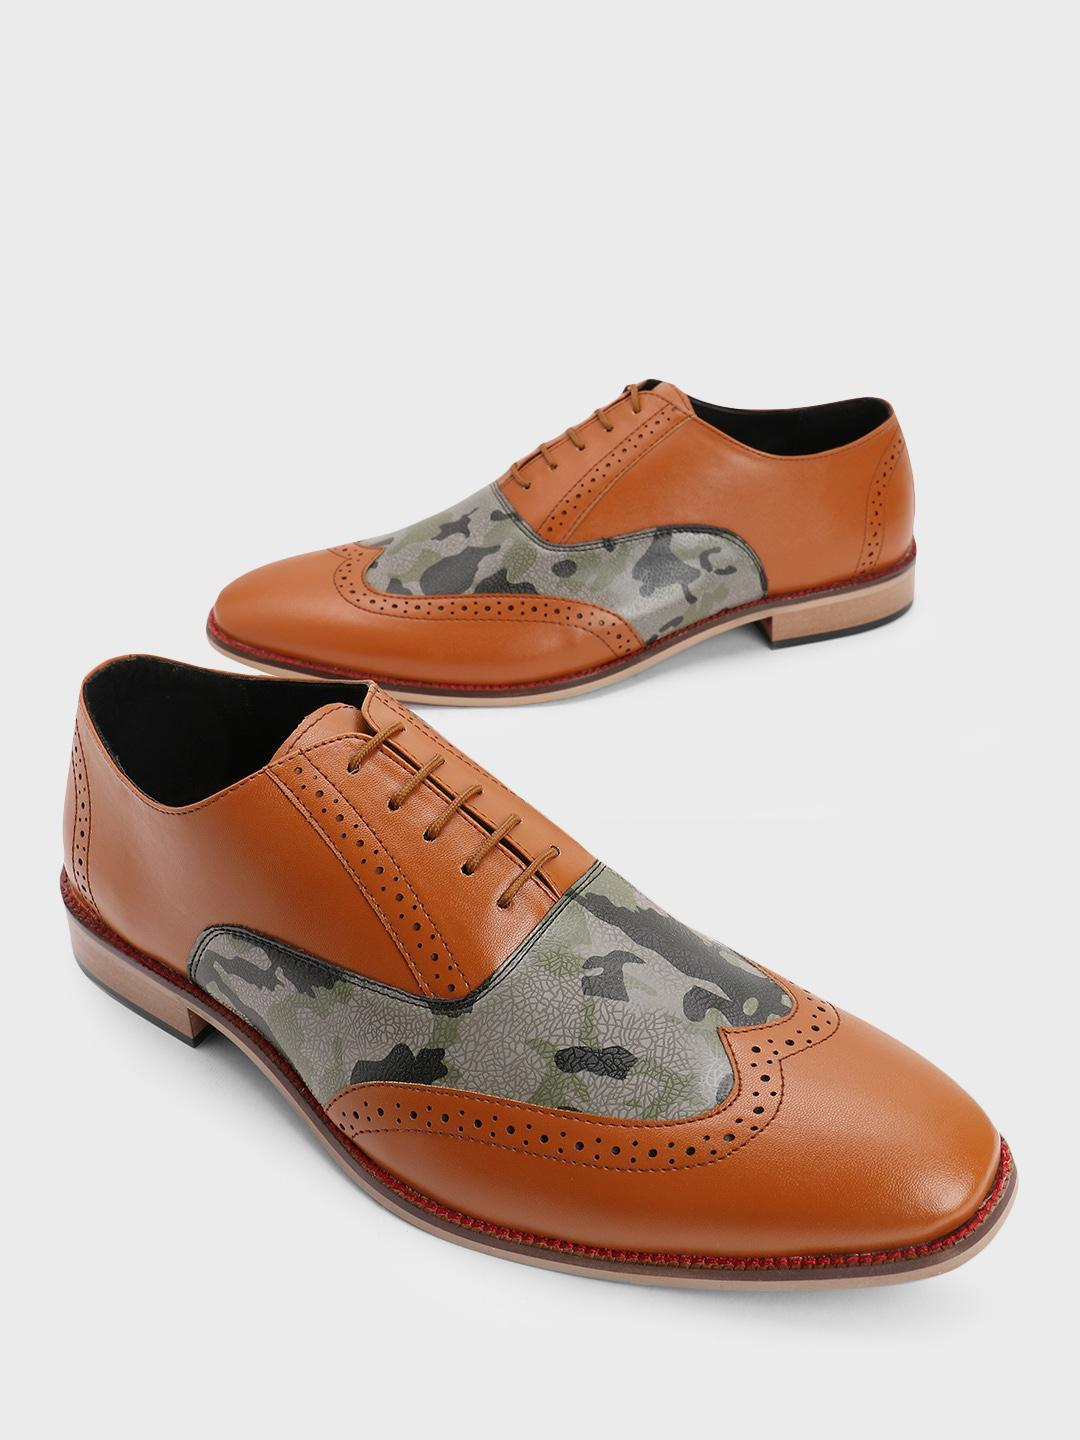 Bolt Of The Good Stuff Multi Camo Print Brogue Derby Shoes 1